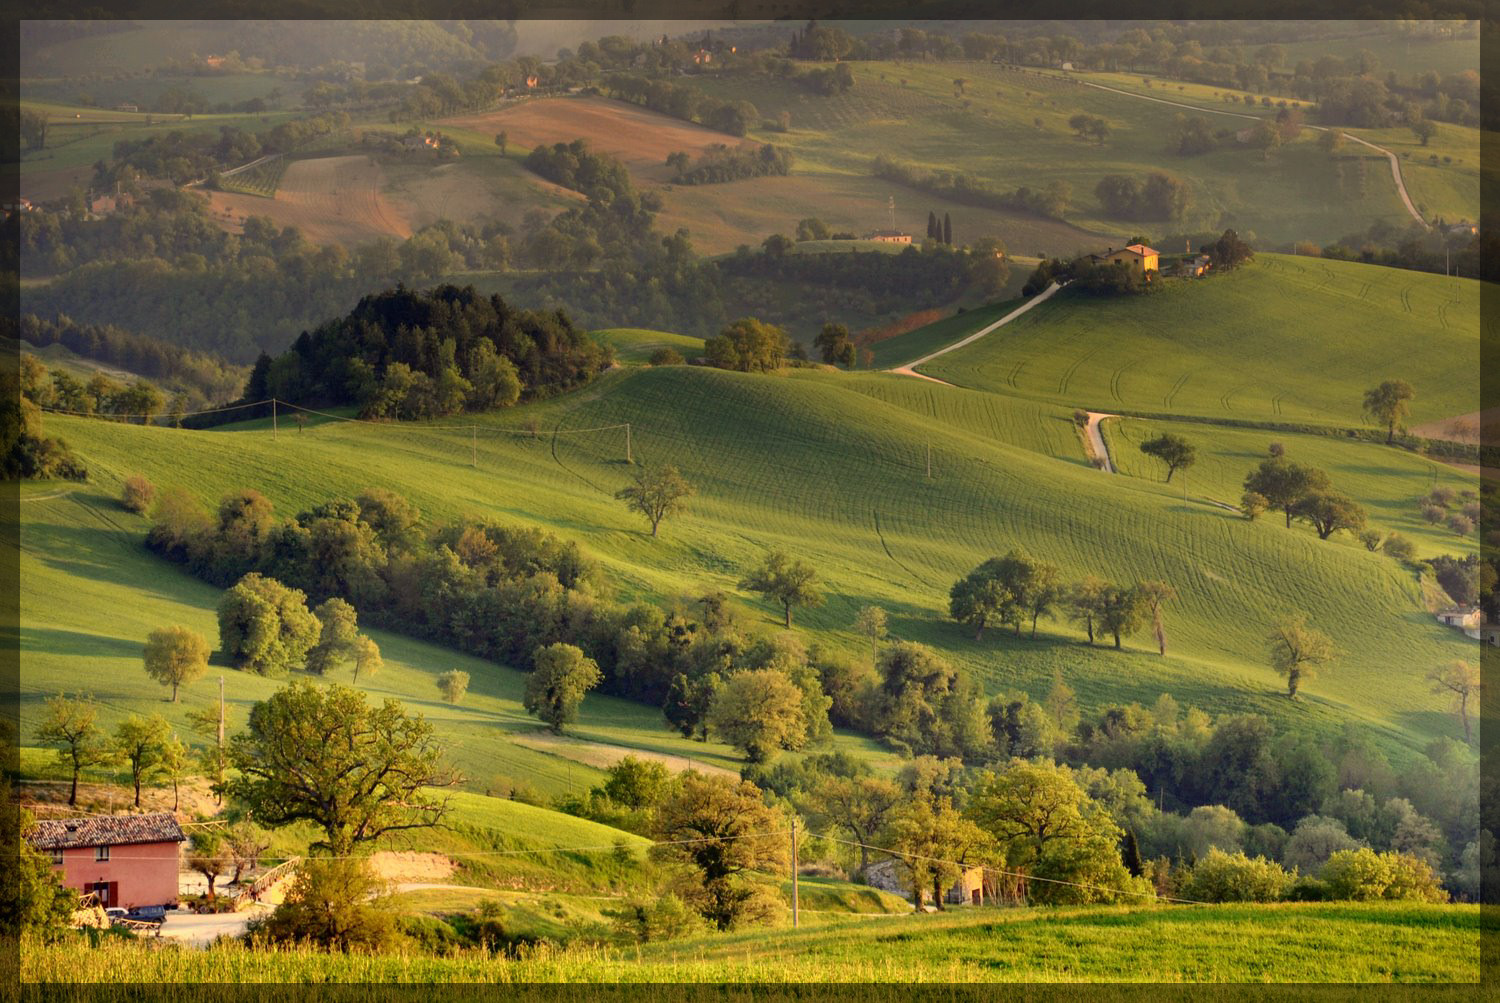 introduction to landscape photography